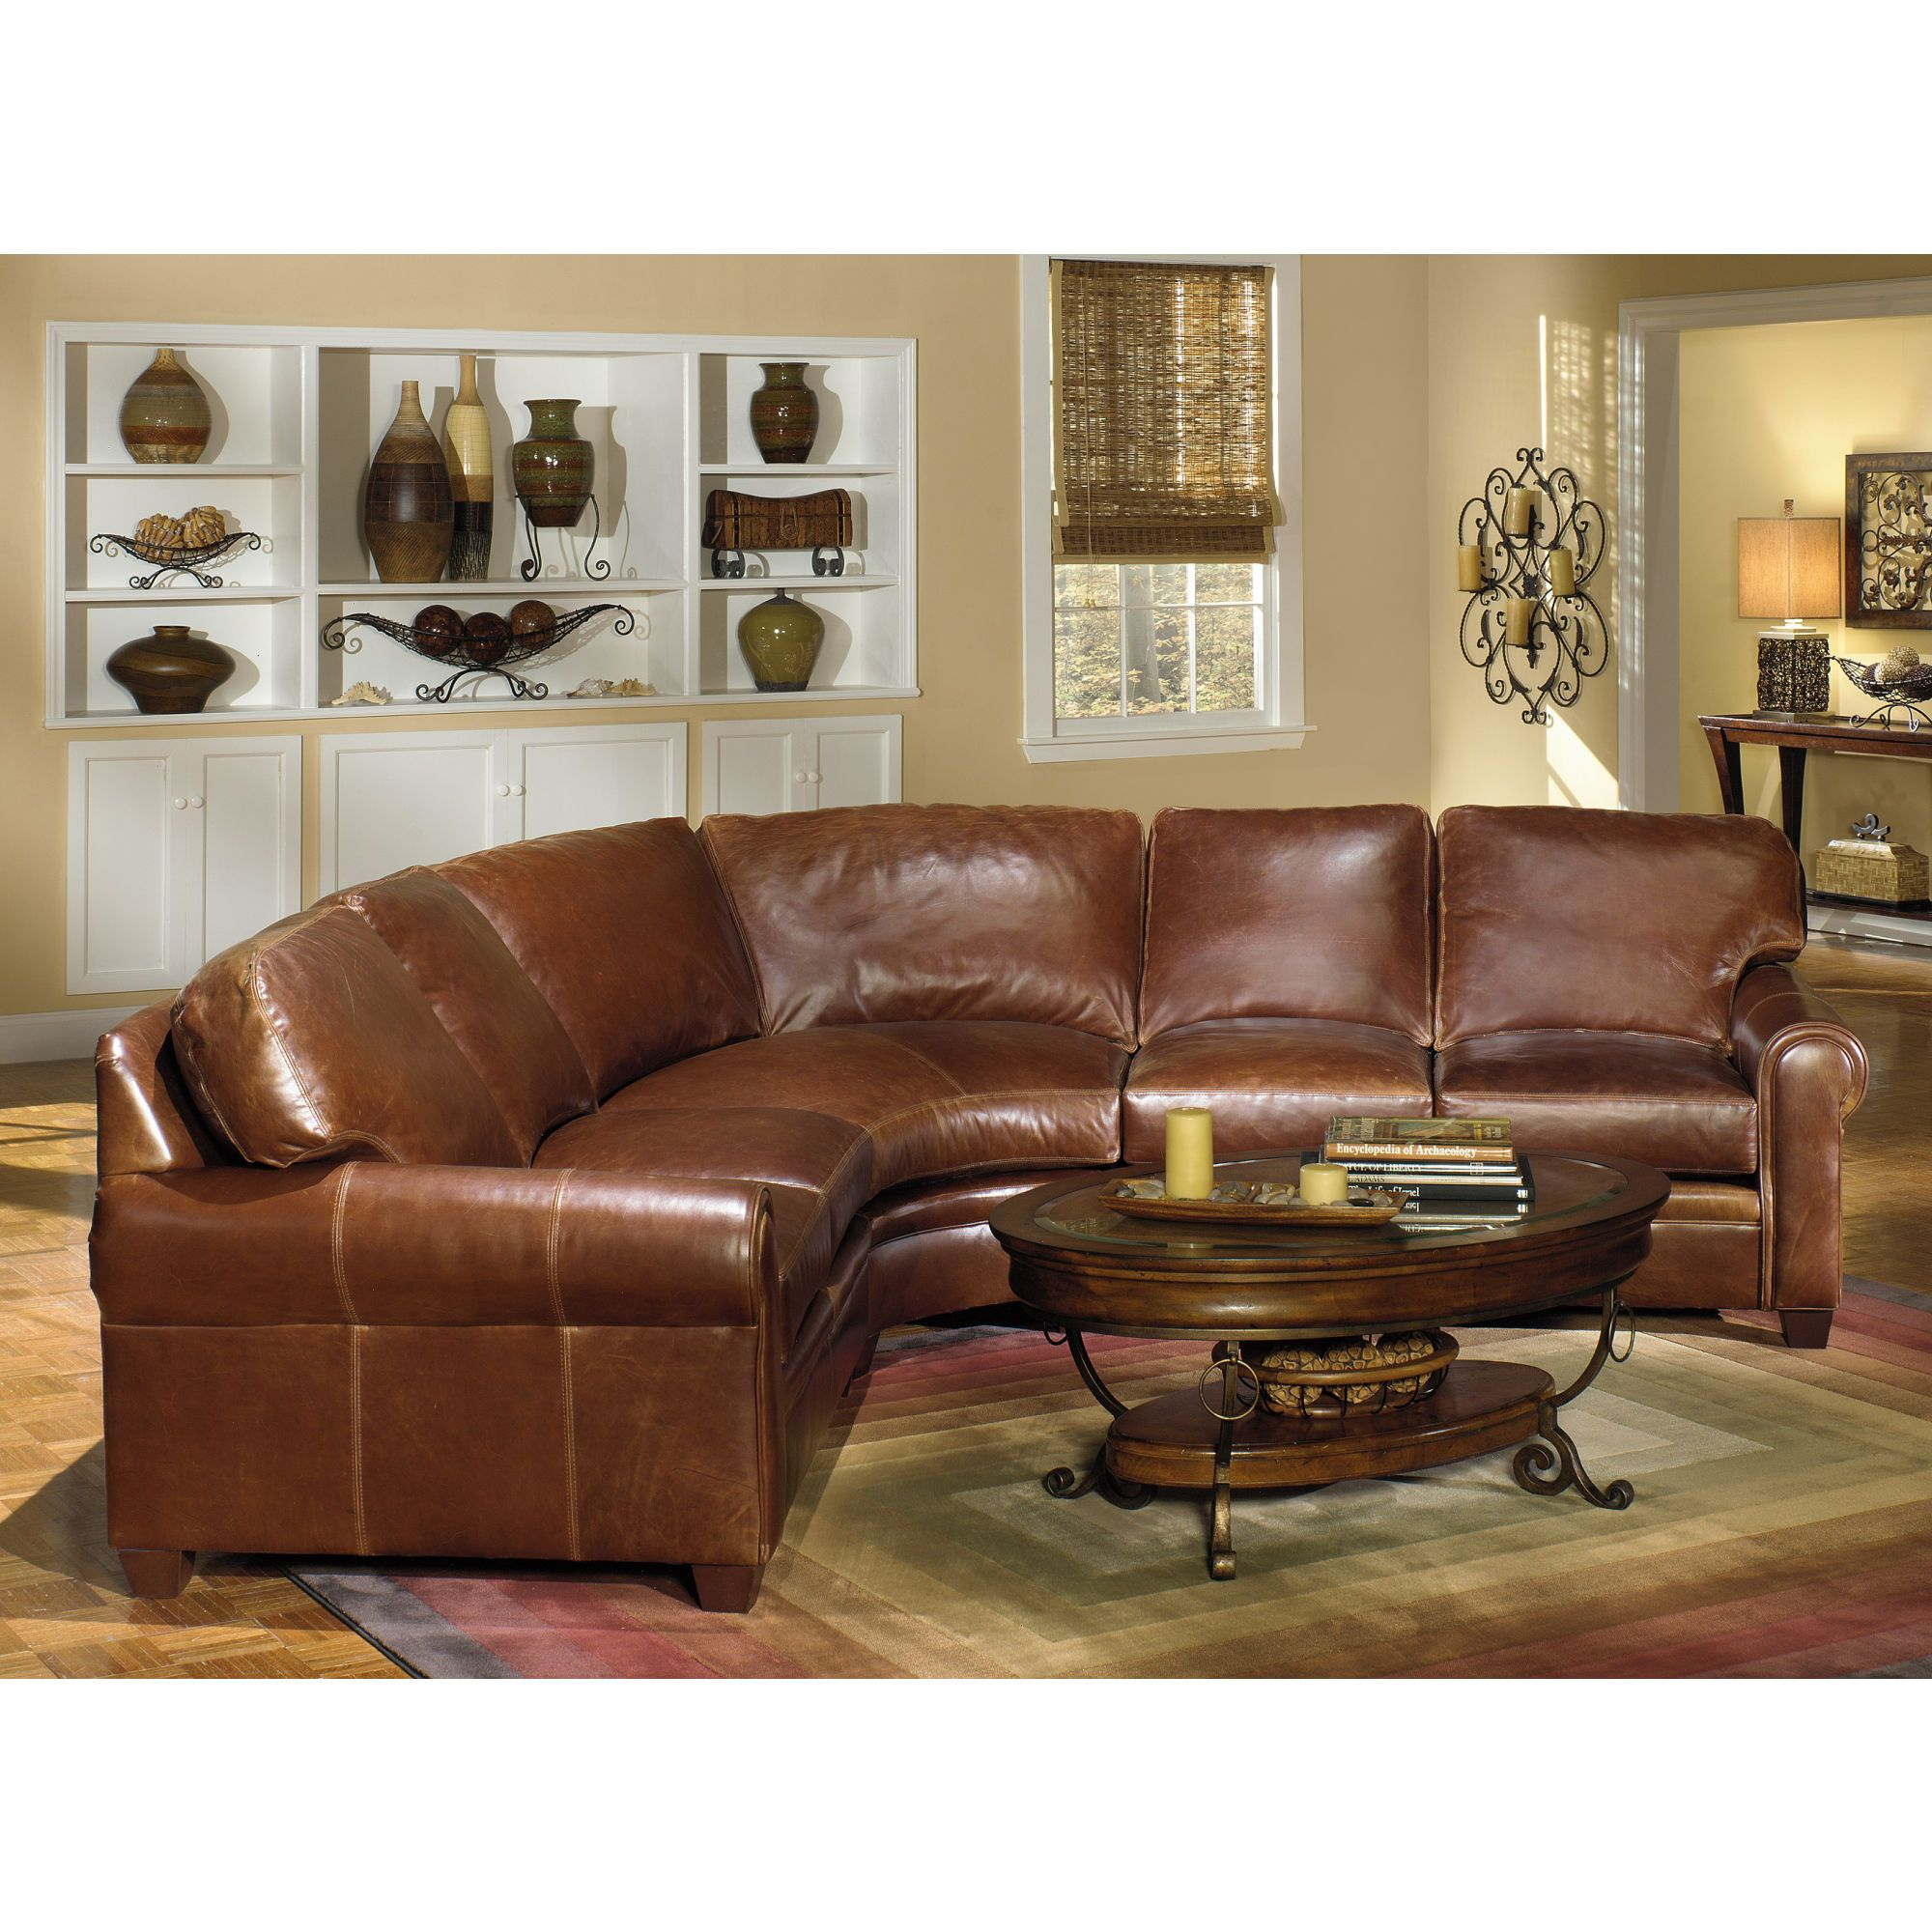 Leather Sectional I Would Like To Have Two Of These